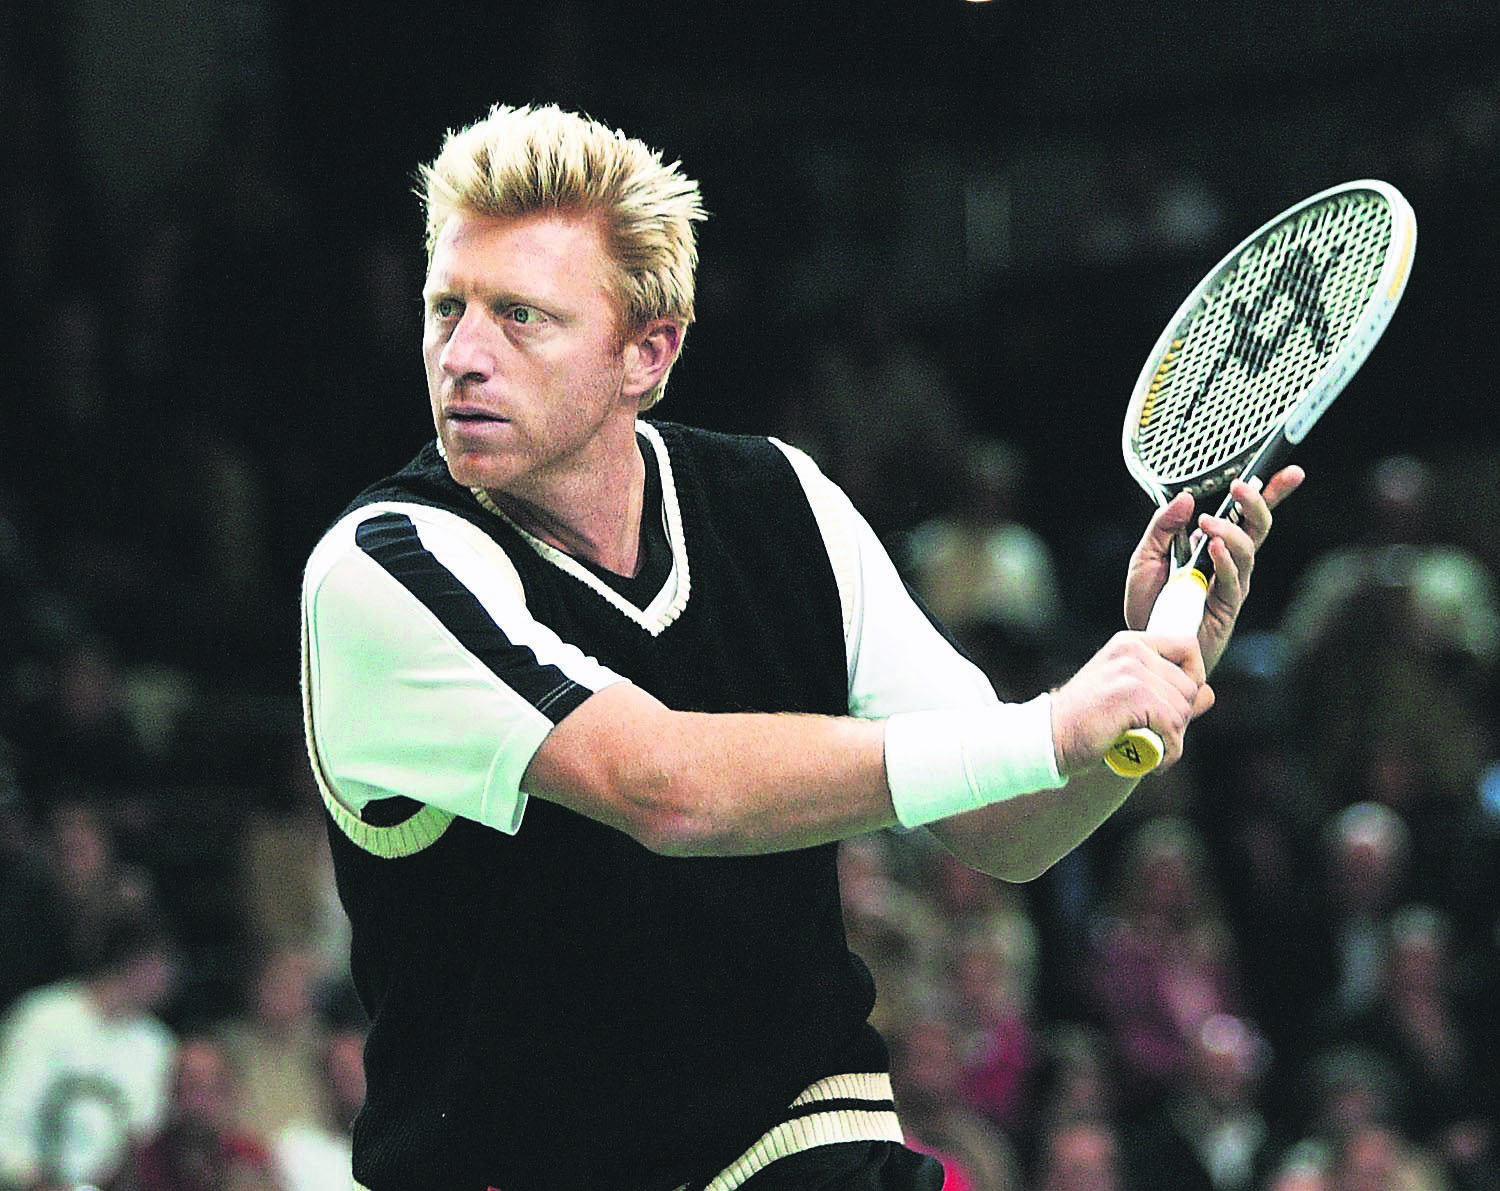 The 49-year-old Becker, who was born in Germany and lives in London, recently coached Novak Djokovic and has been a TV commentator.